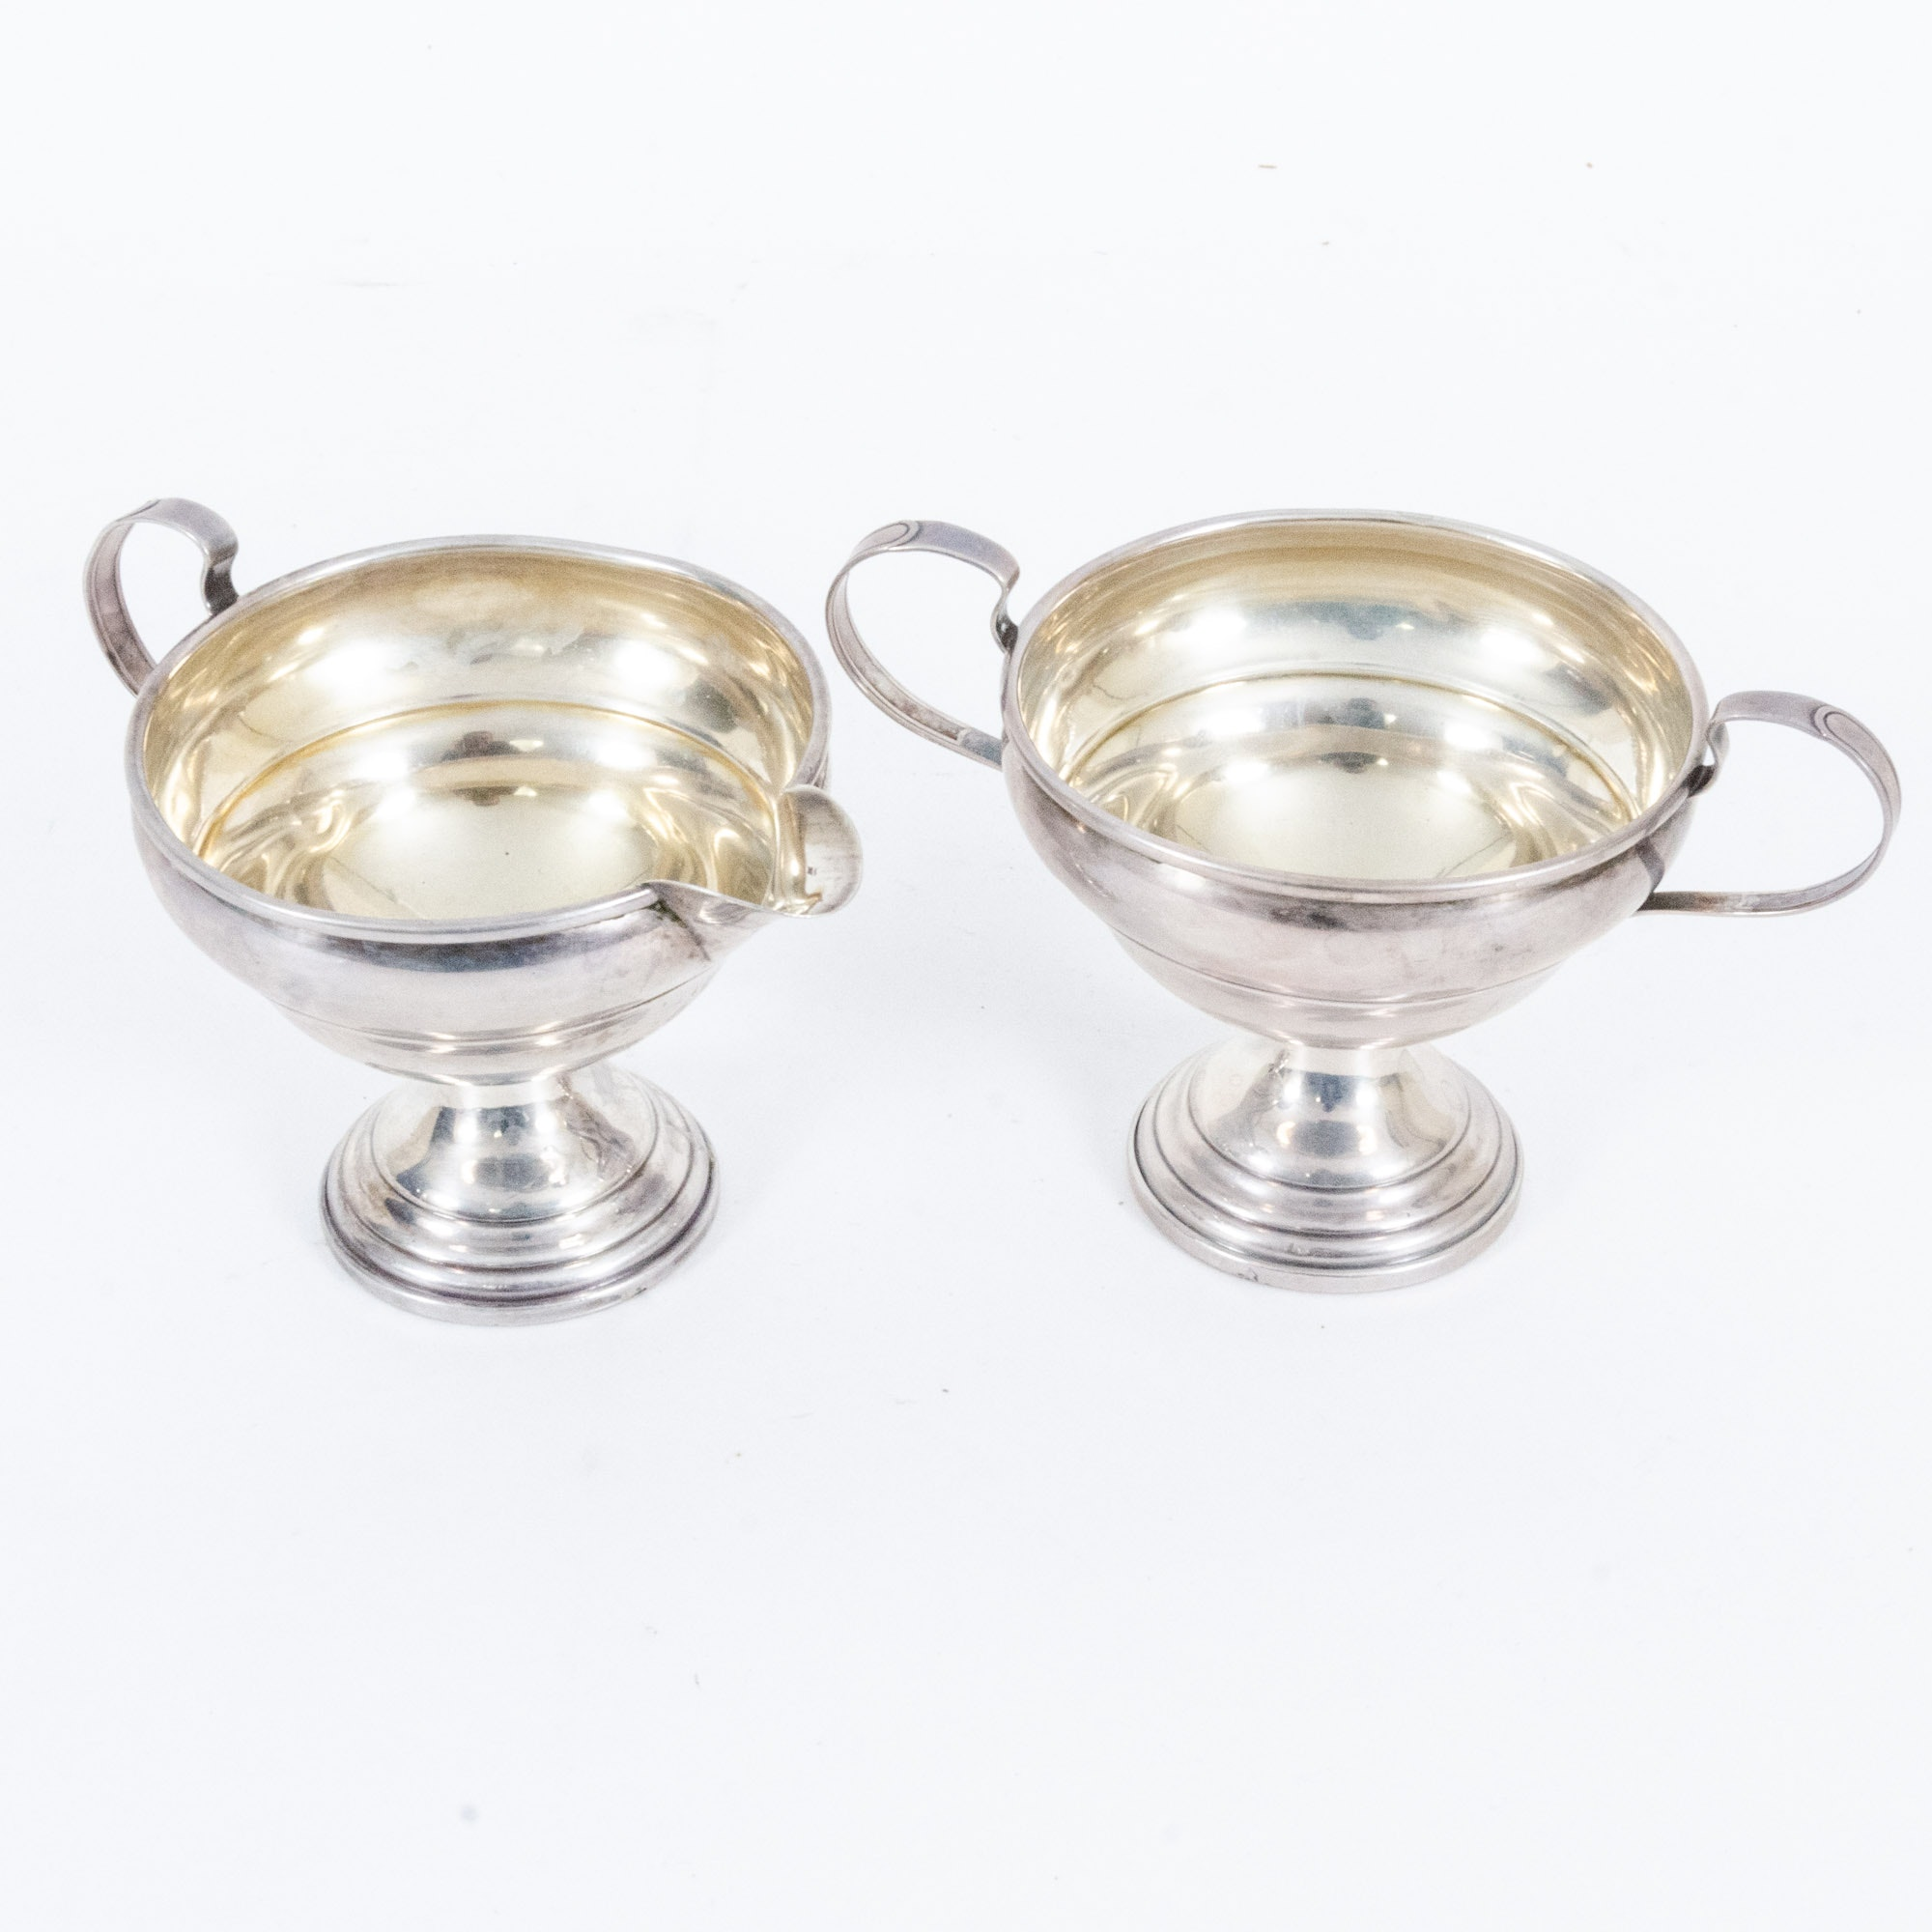 Elgin Silversmith Co. Weighted Sterling Silver Creamer and Sugar Bowl Pair